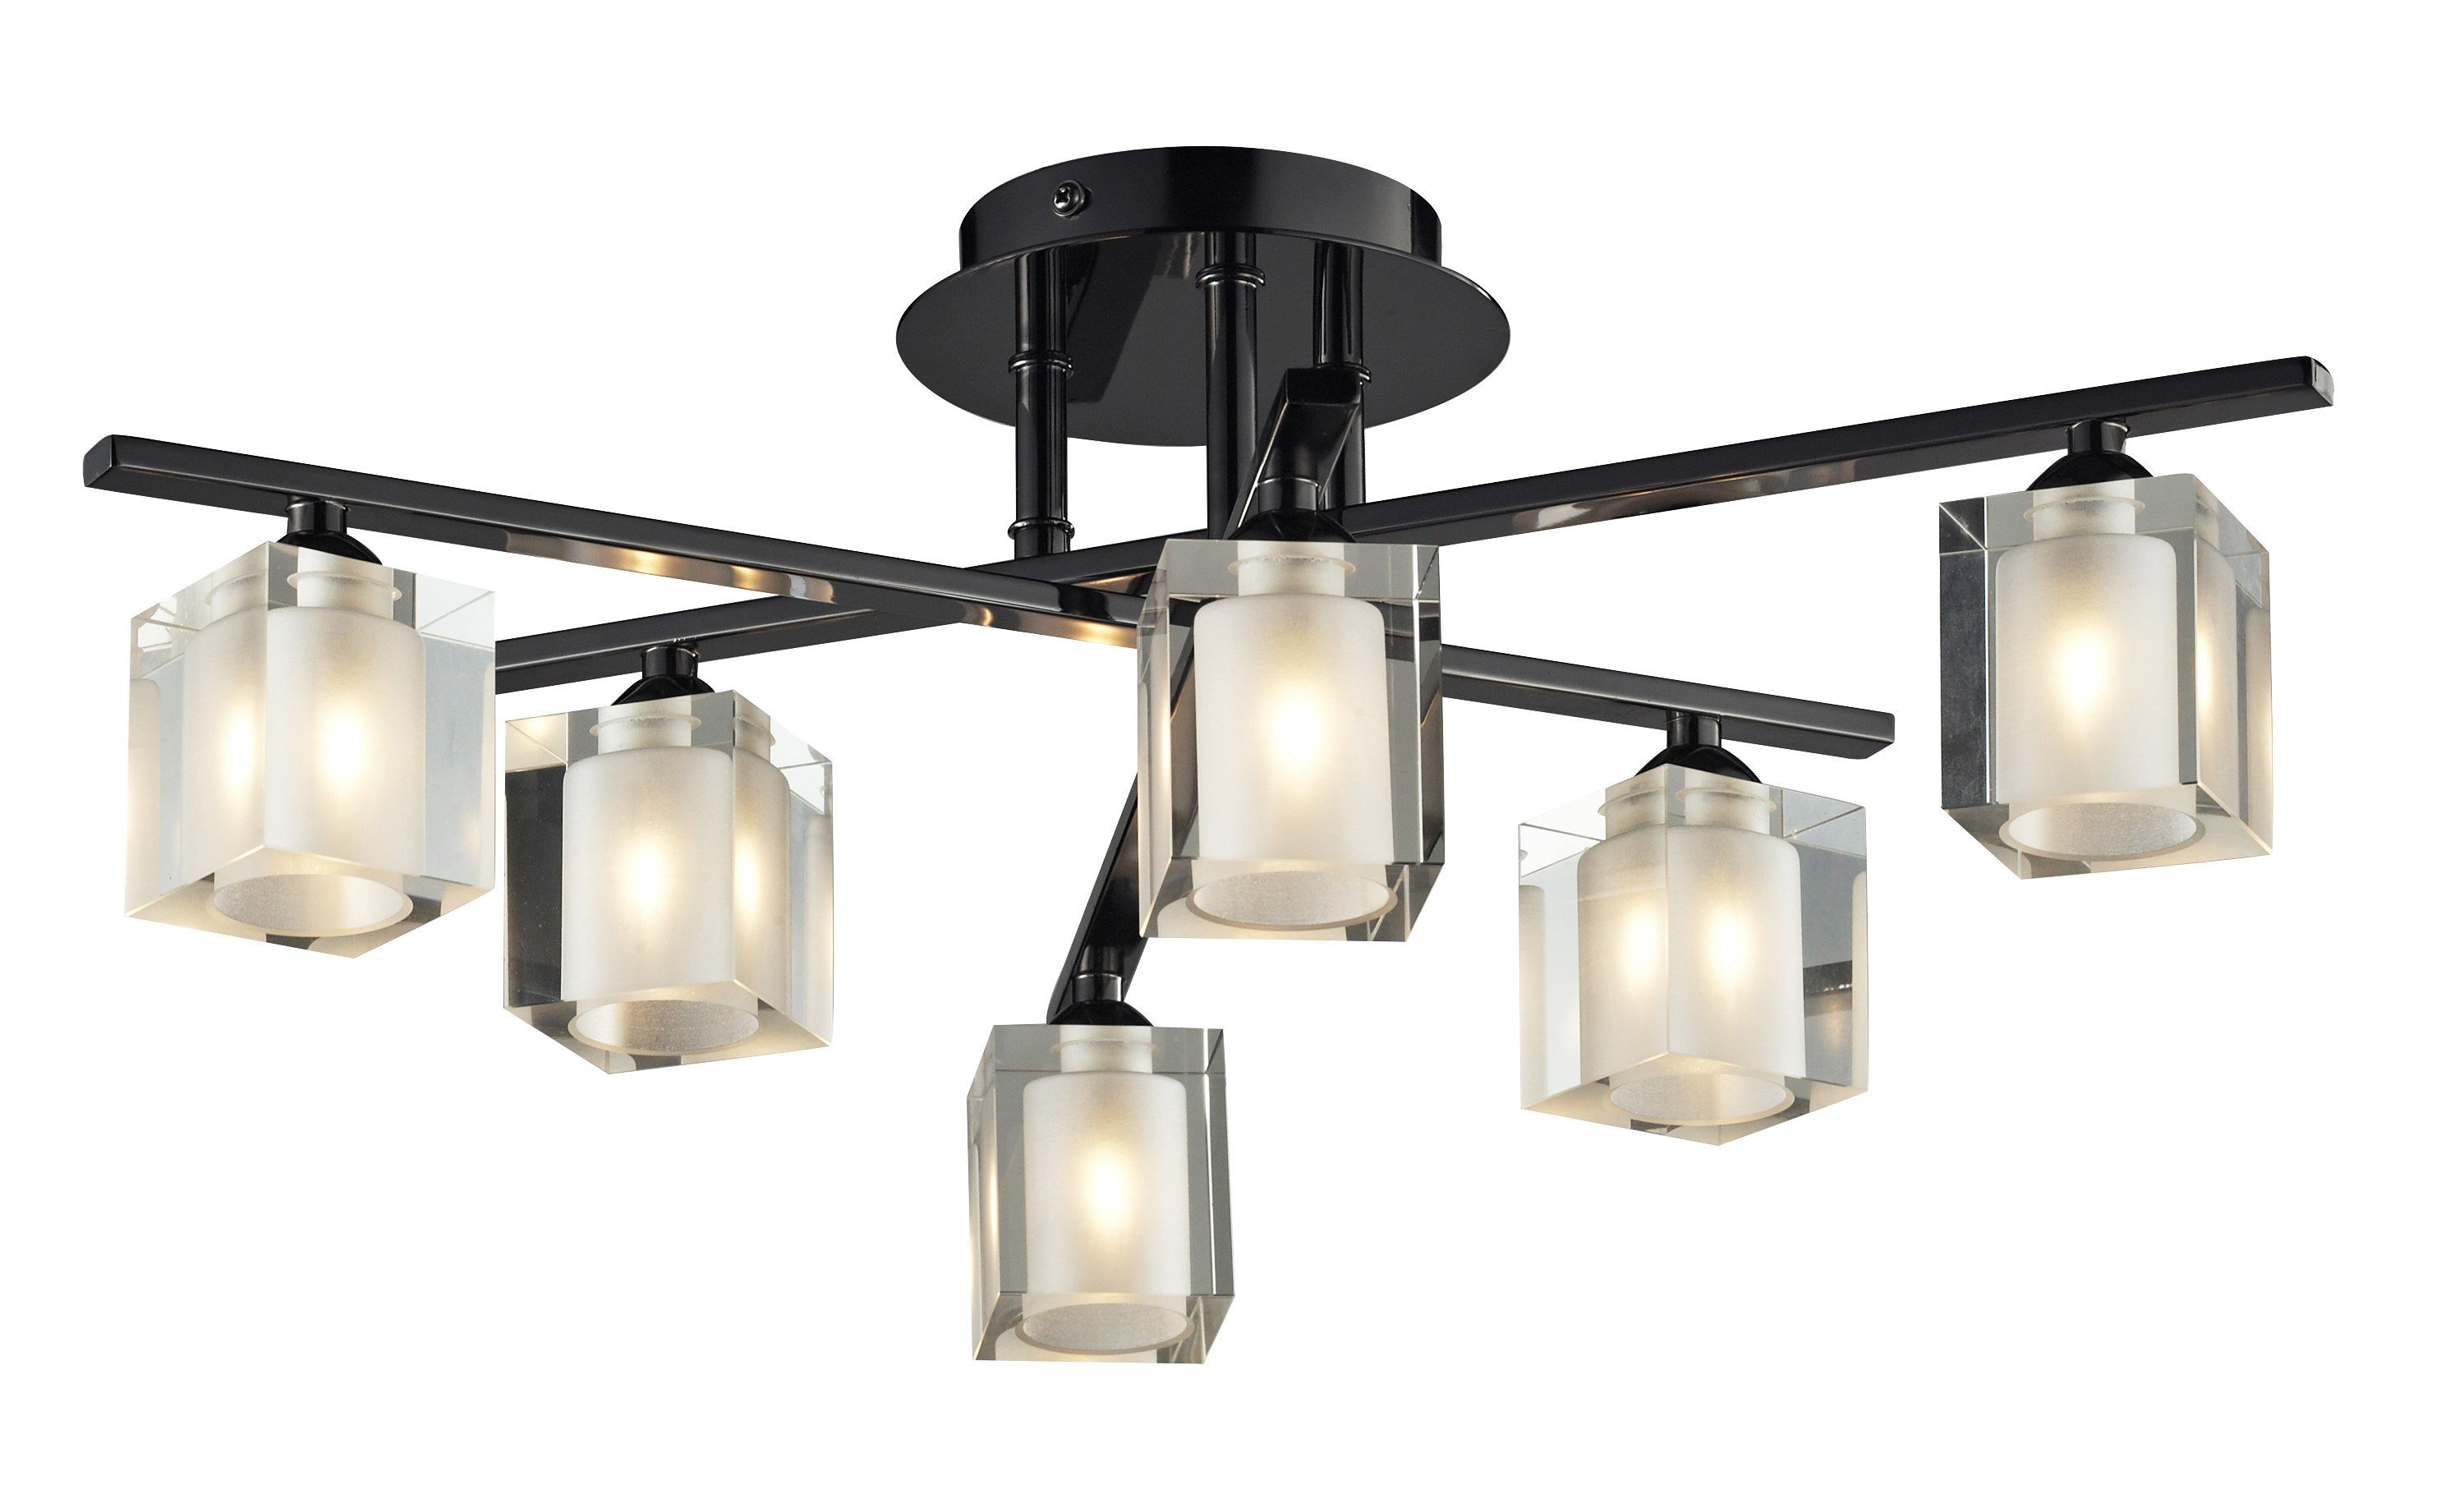 Narran cubic black nickel effect 6 lamp ceiling lamp ceilings bedroom narran cubic black nickel effect 6 lamp ceiling lamp departments diy at bq mozeypictures Image collections